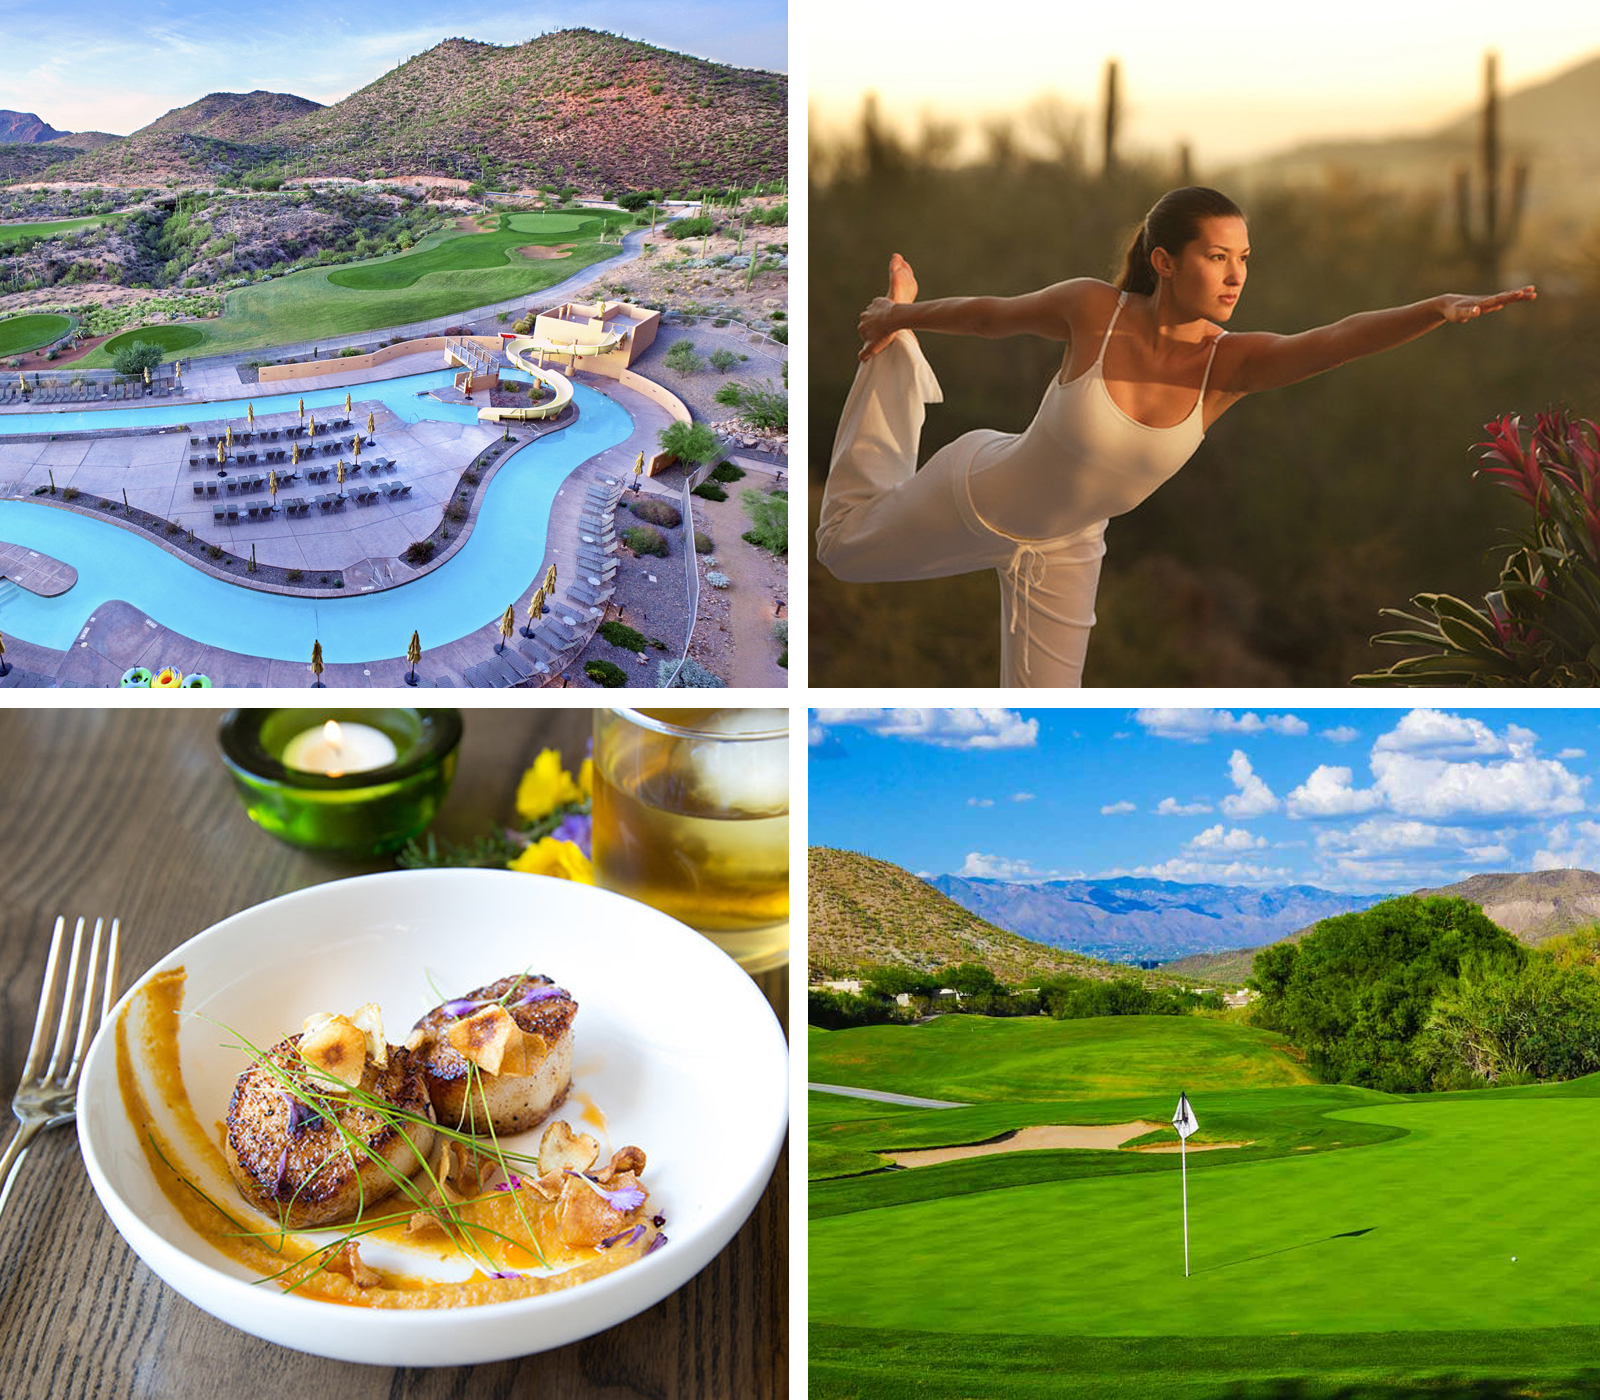 JW Marriott Starr Pass Golf Club and Spa in Tucson